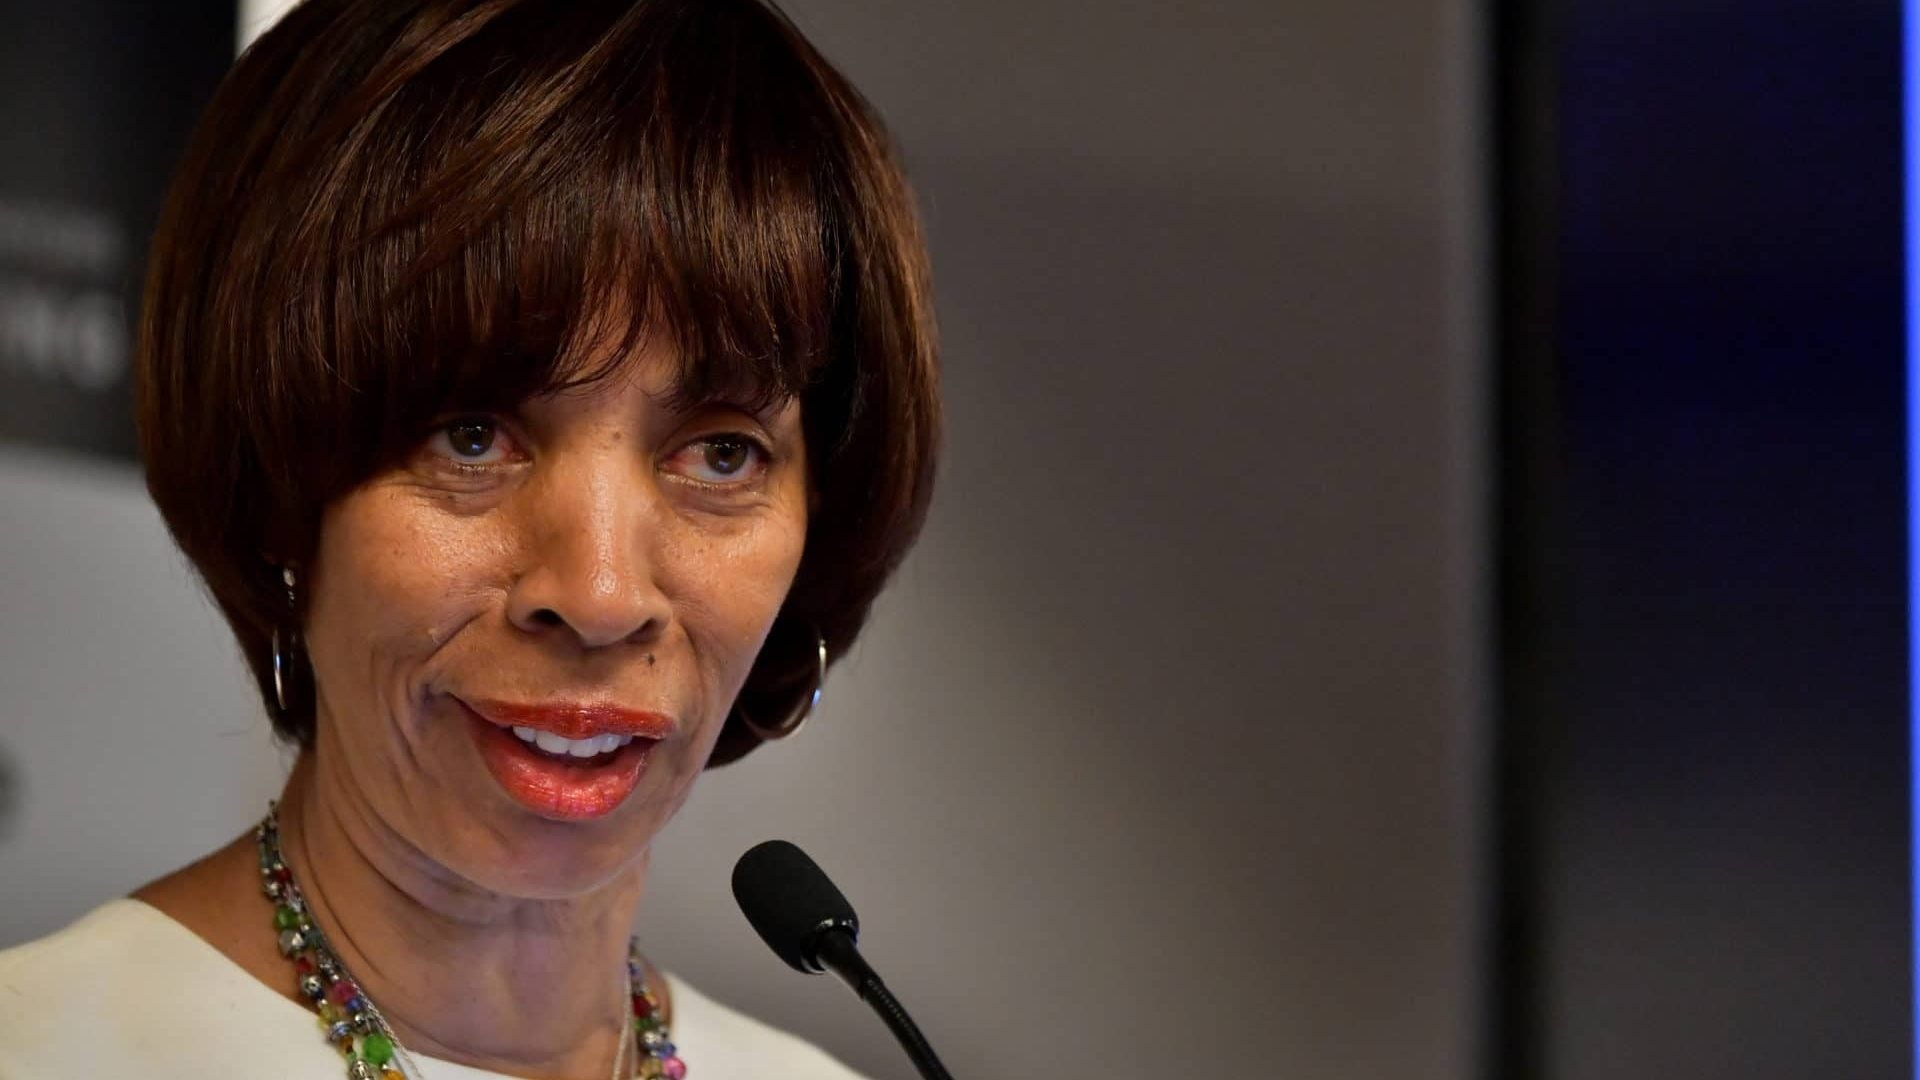 Baltimore Mayor Catherine Pugh Resigns Amidst Scandal Over Book Deals